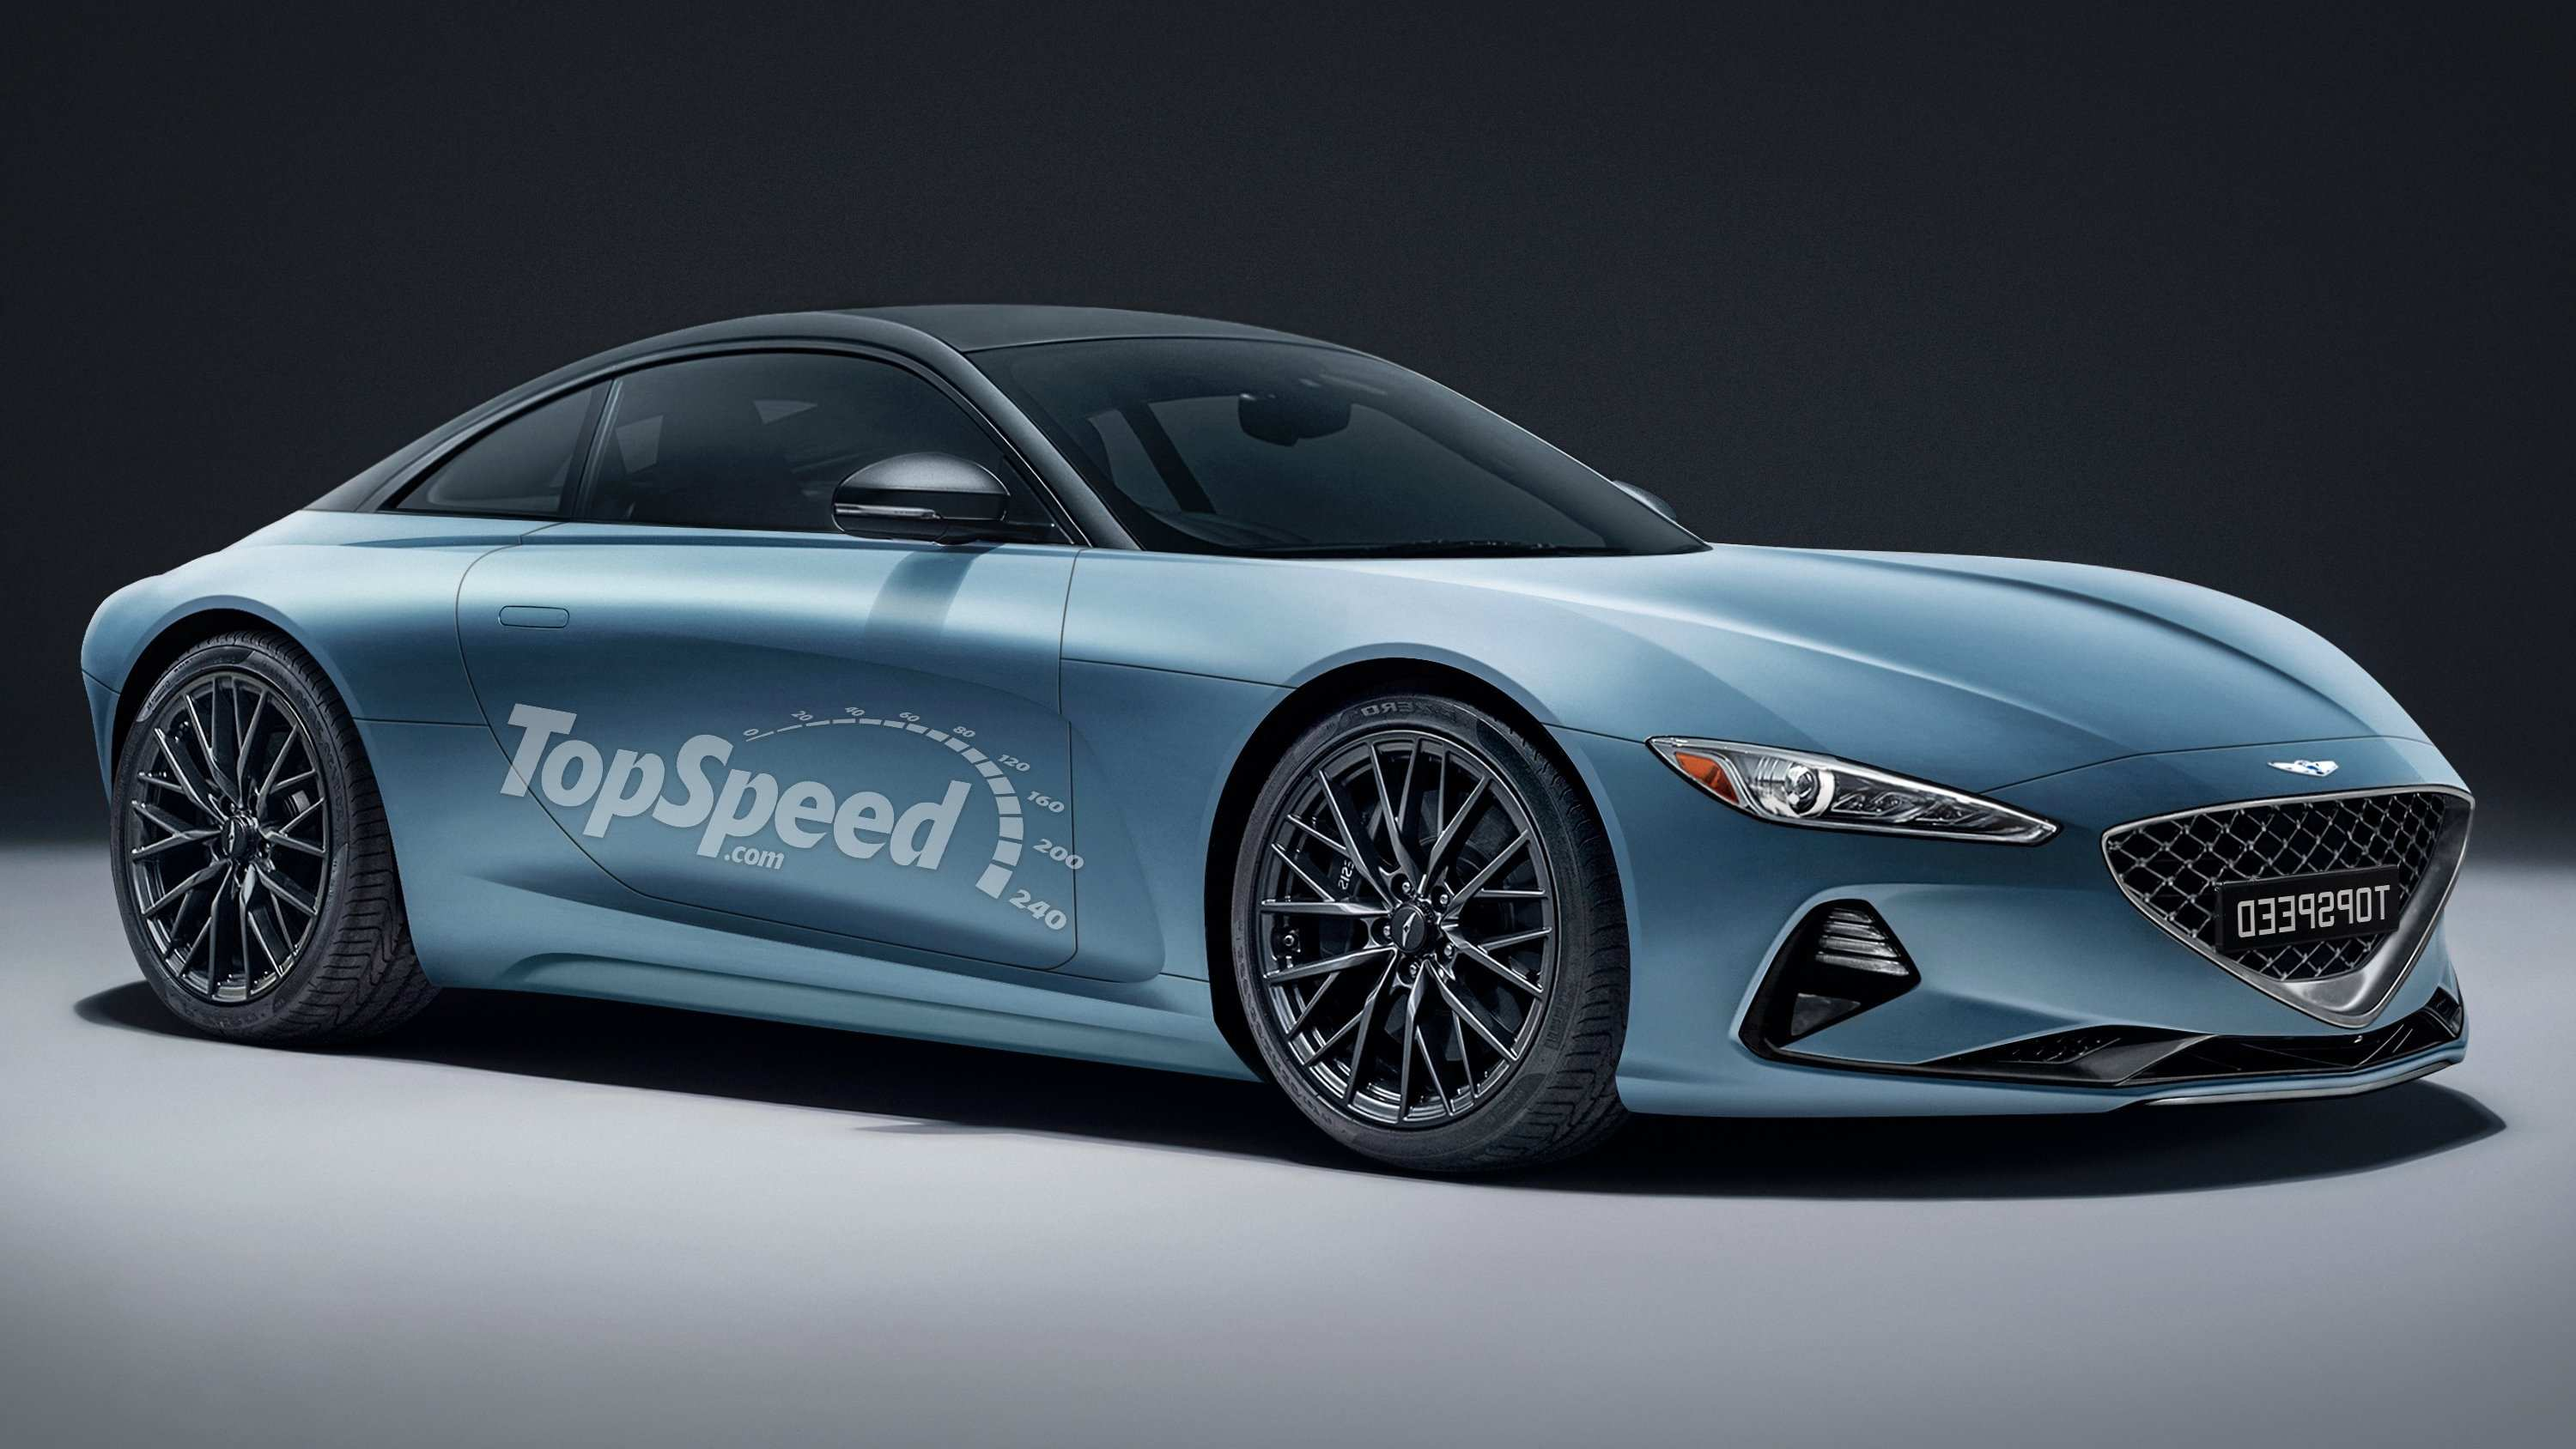 45 Best 2020 Hyundai Genesis Coupe V8 Research New